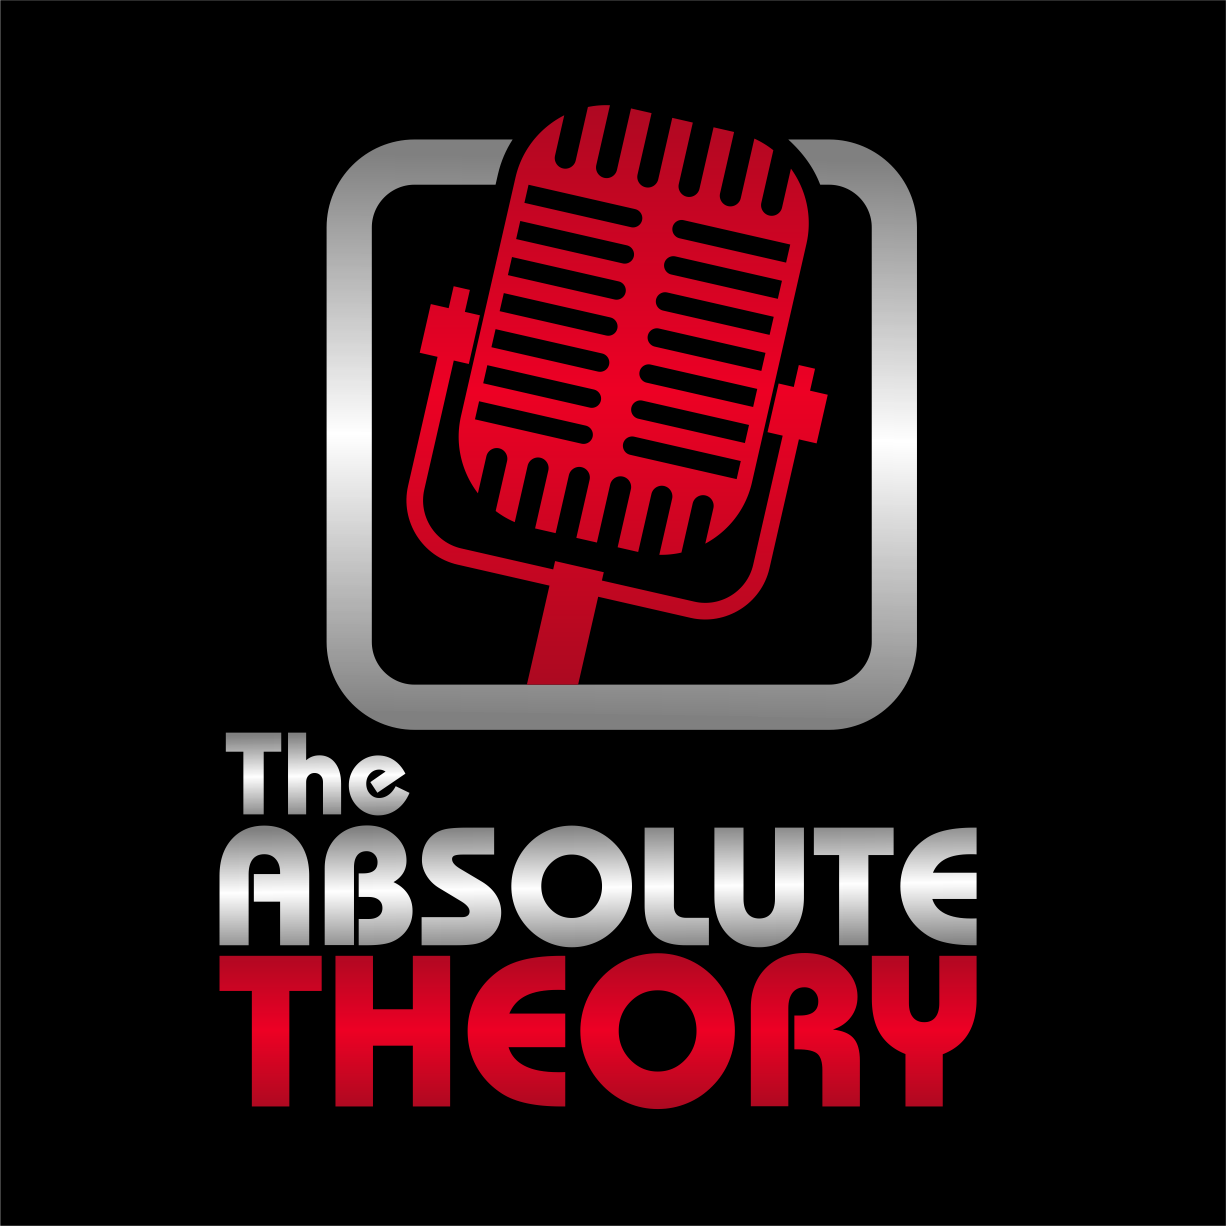 Episode 001 - Welcome to the absolute theory